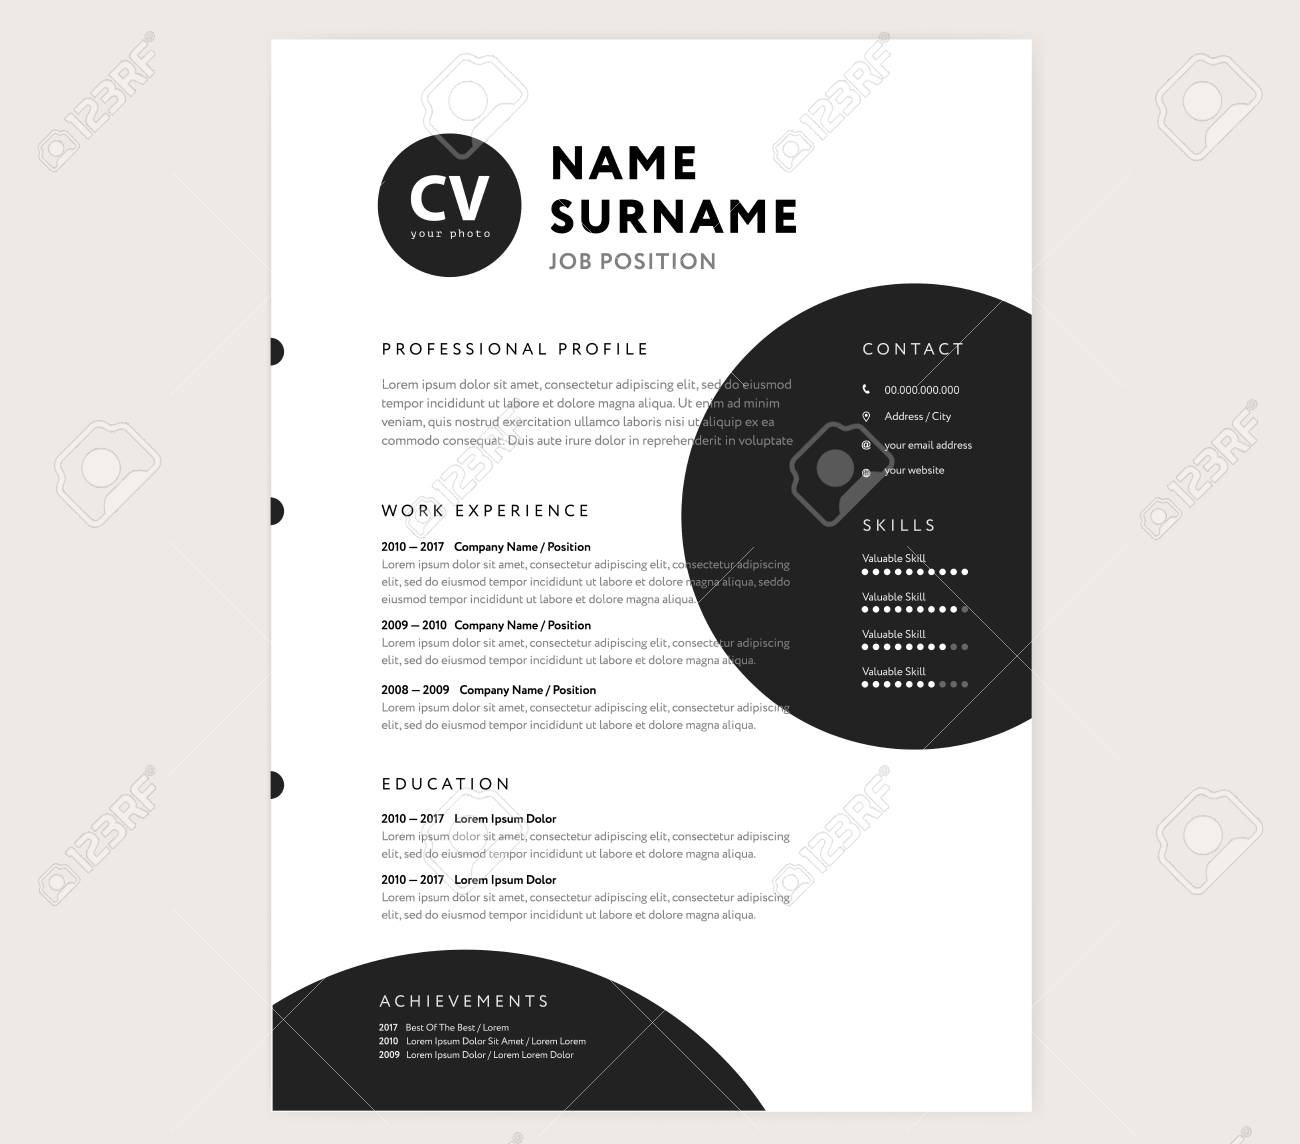 Cv Resume Template Creative Stylish Curriculum Vitae Design